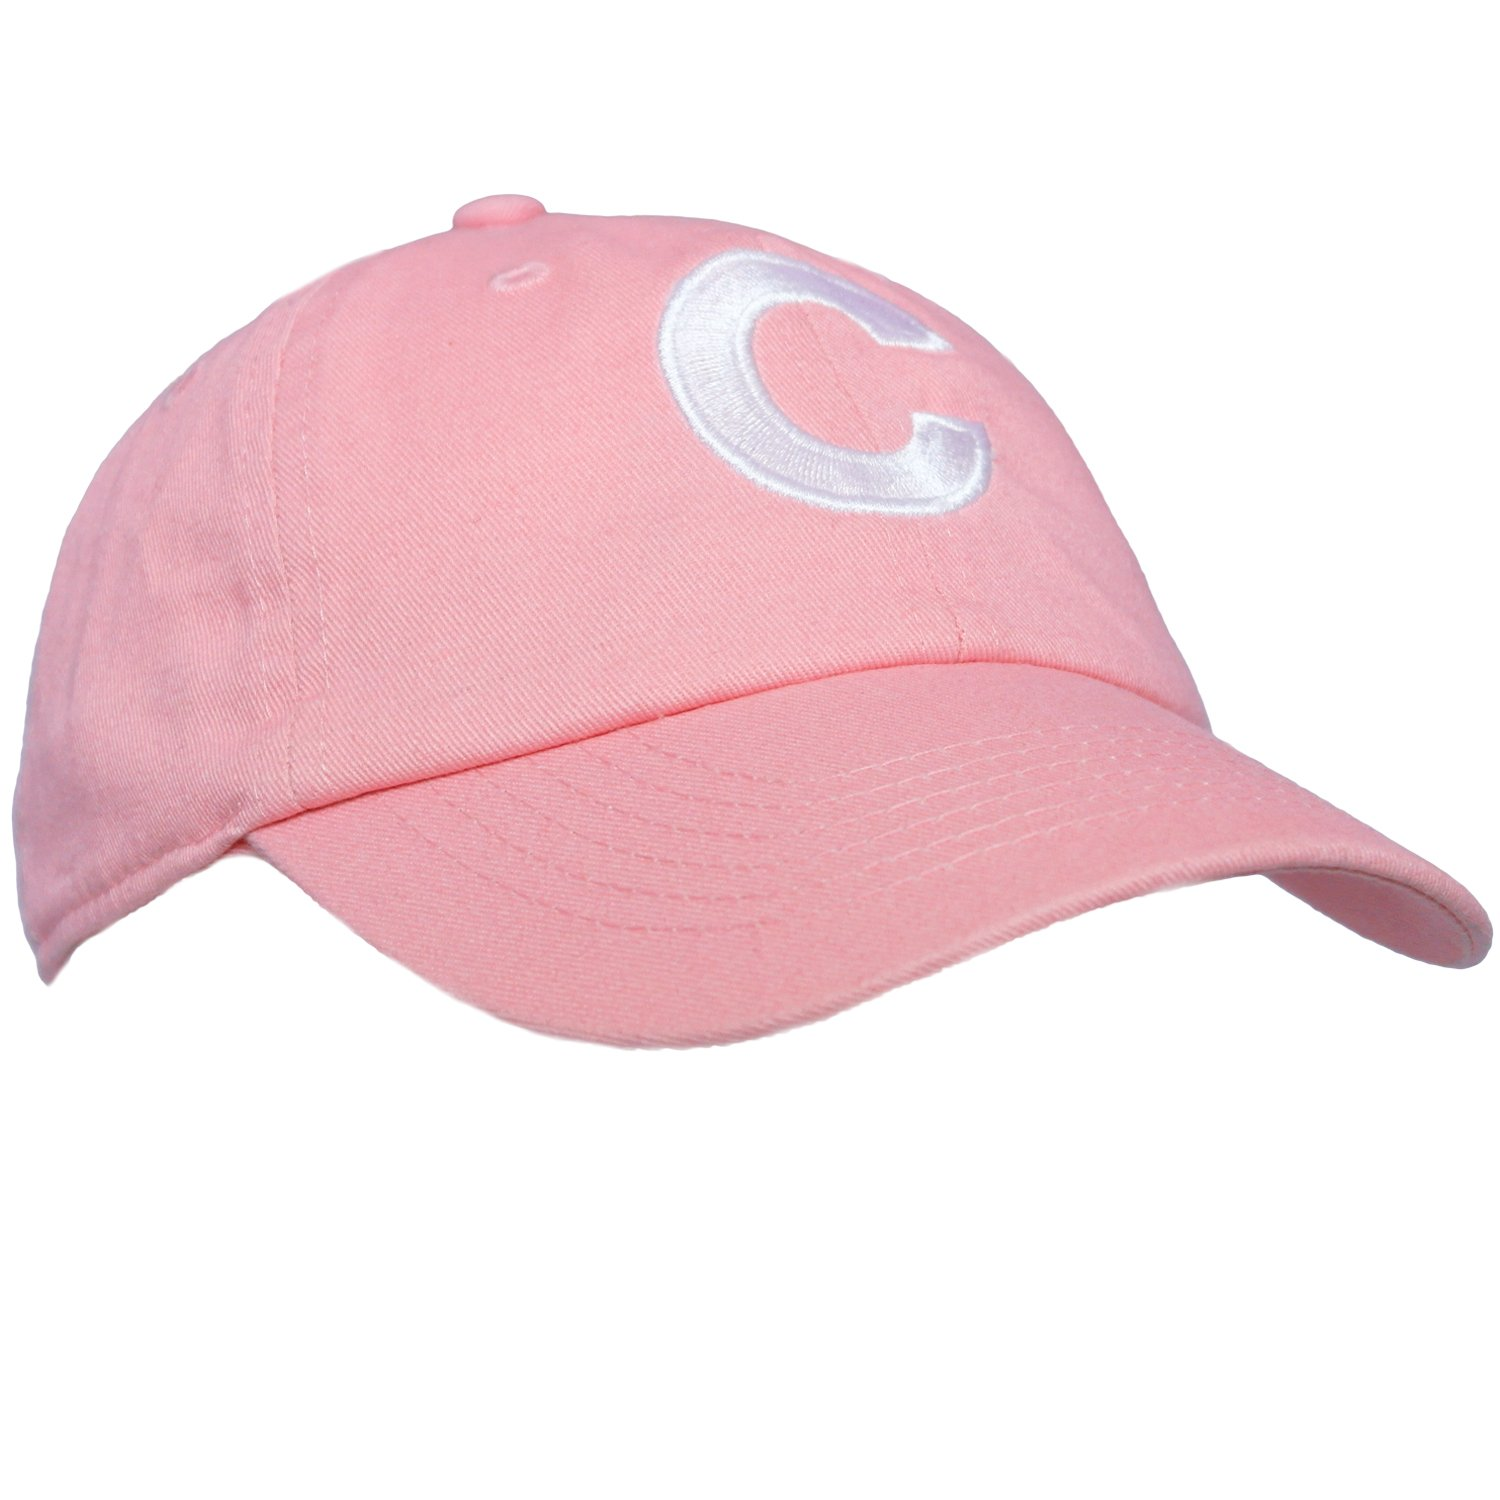 Tiny Expressions Toddler Girls' Pink Embroidered Initial Baseball Hat Monogrammed Cap (C, 2-6yrs)